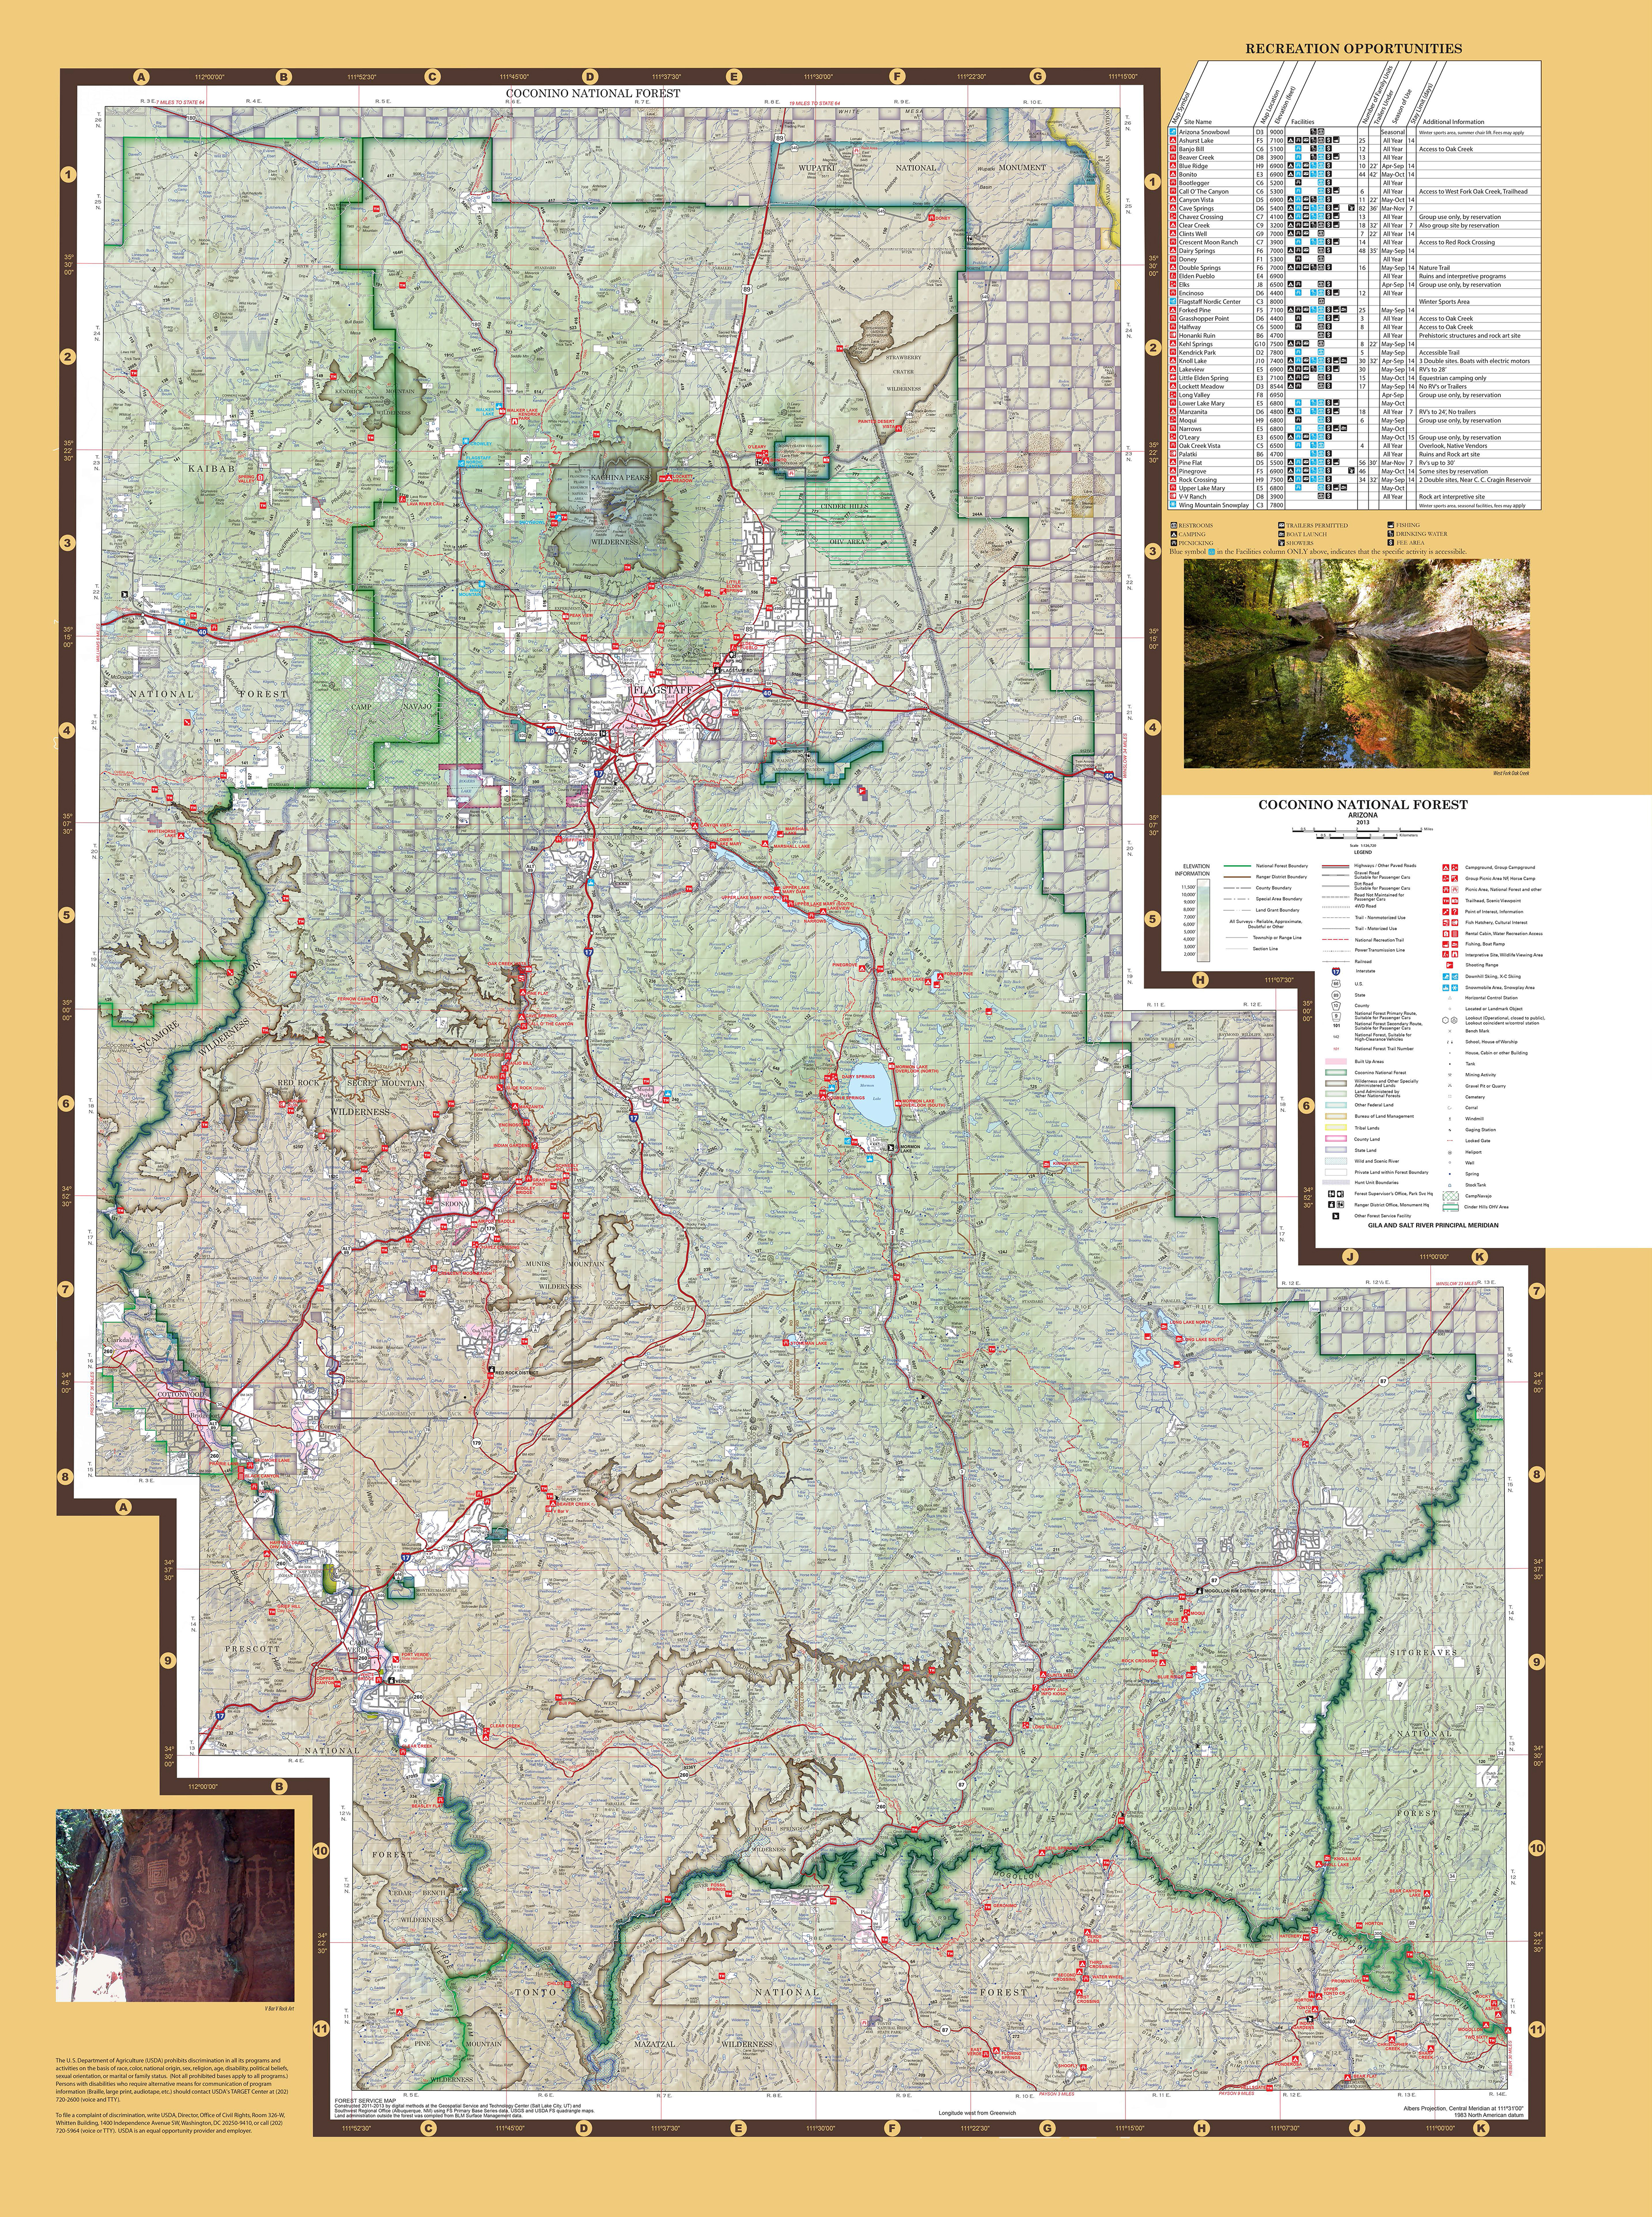 Coconino National Forest   Maps   Publications Coconino National Forest Map  JPEG  13 MB